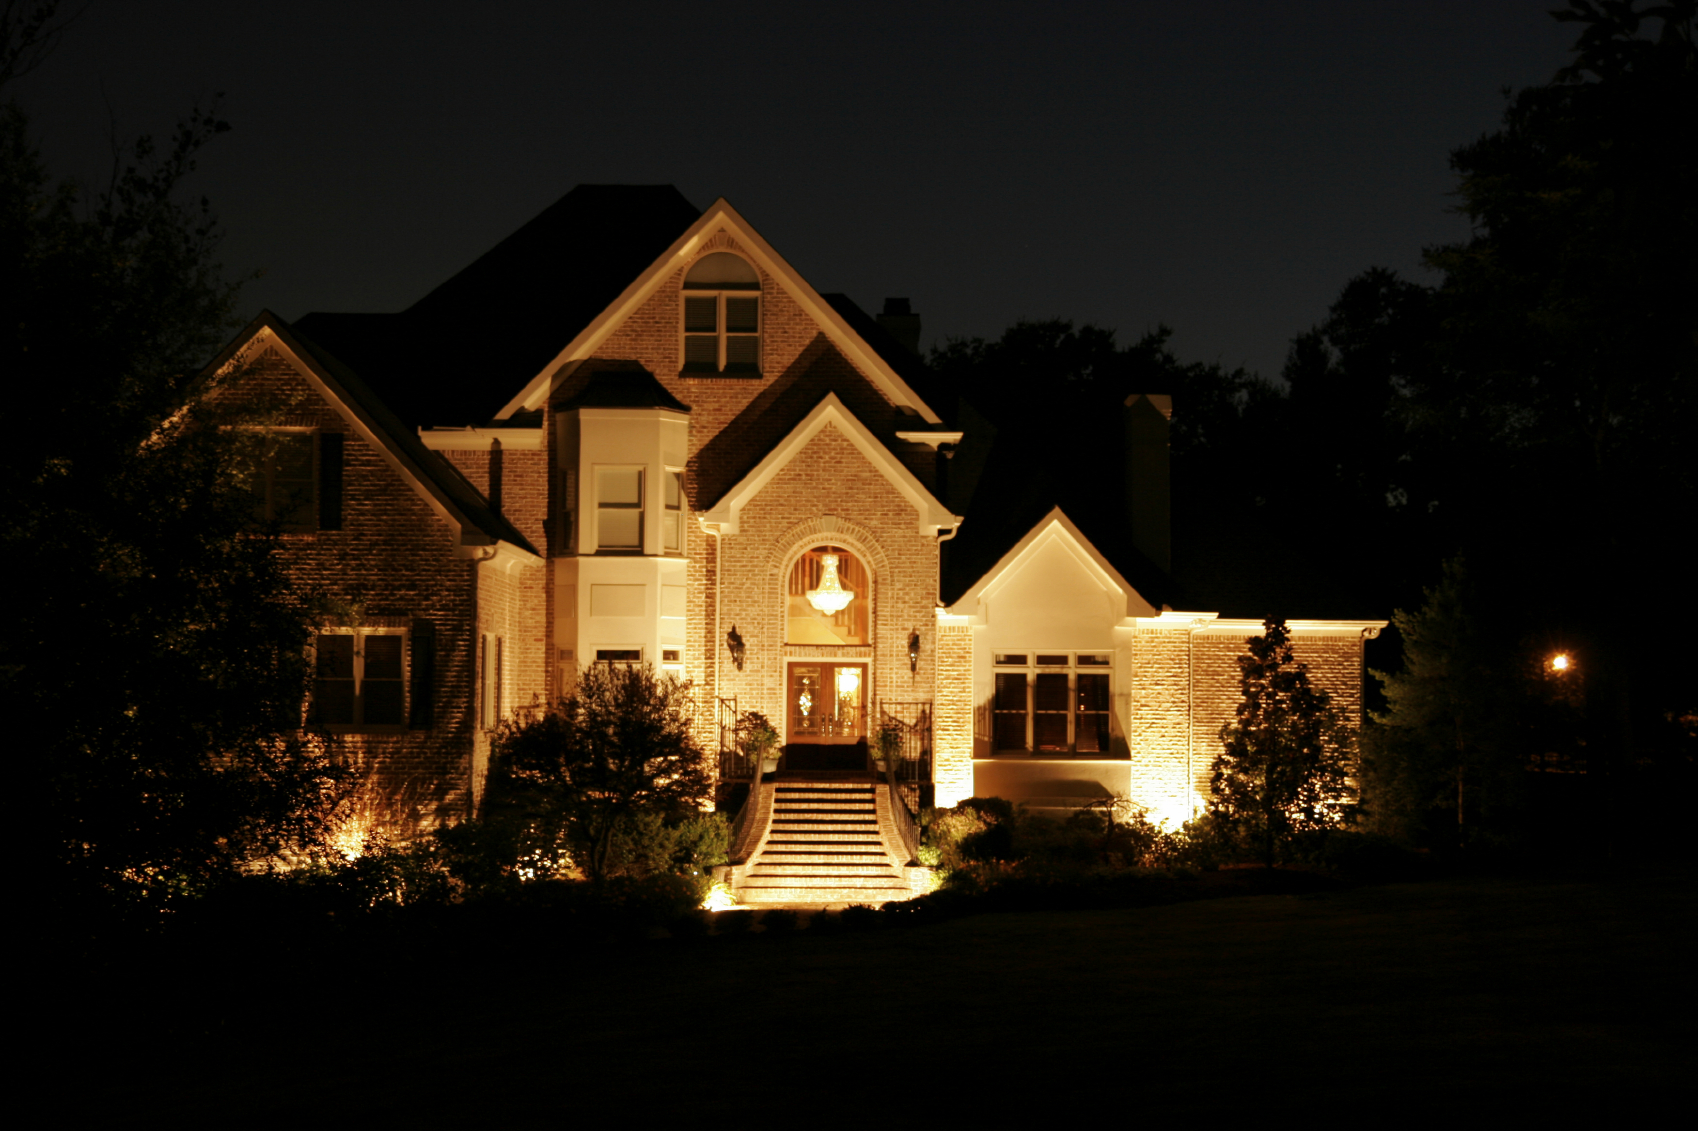 House at Night -